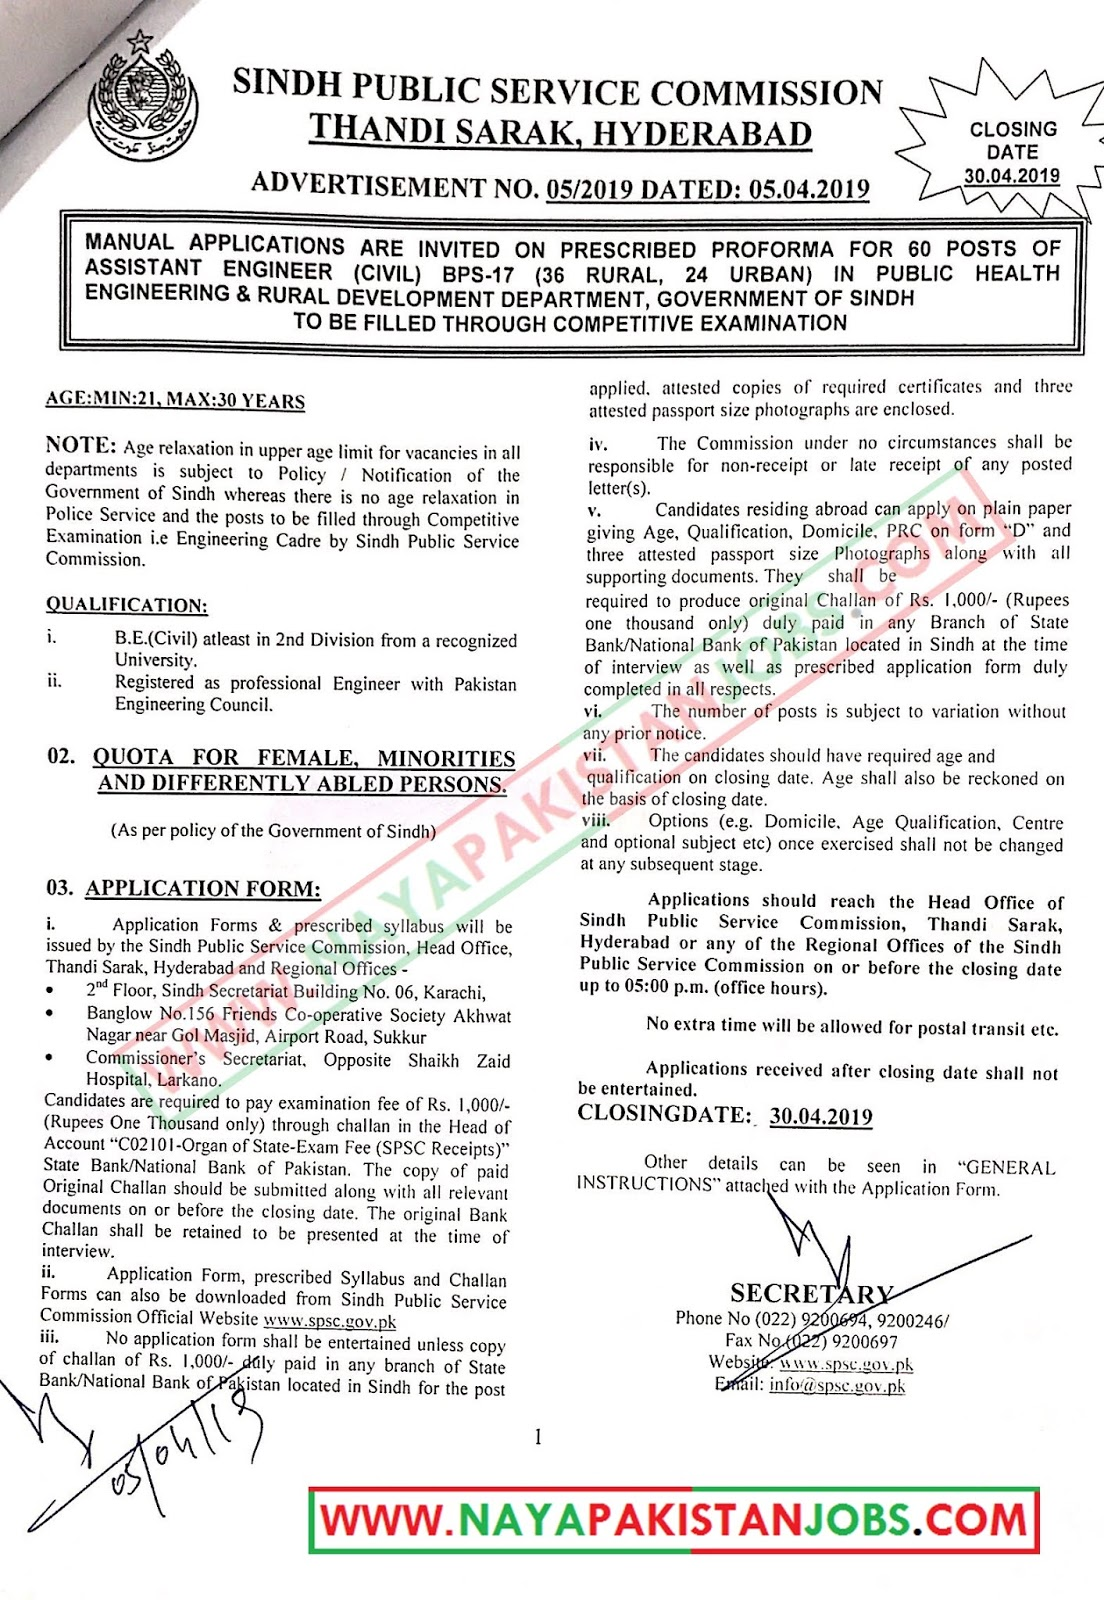 Jobs in SPSC, Sindh Public Service Commission ,Assistant Engineer [ 60 Posts ]